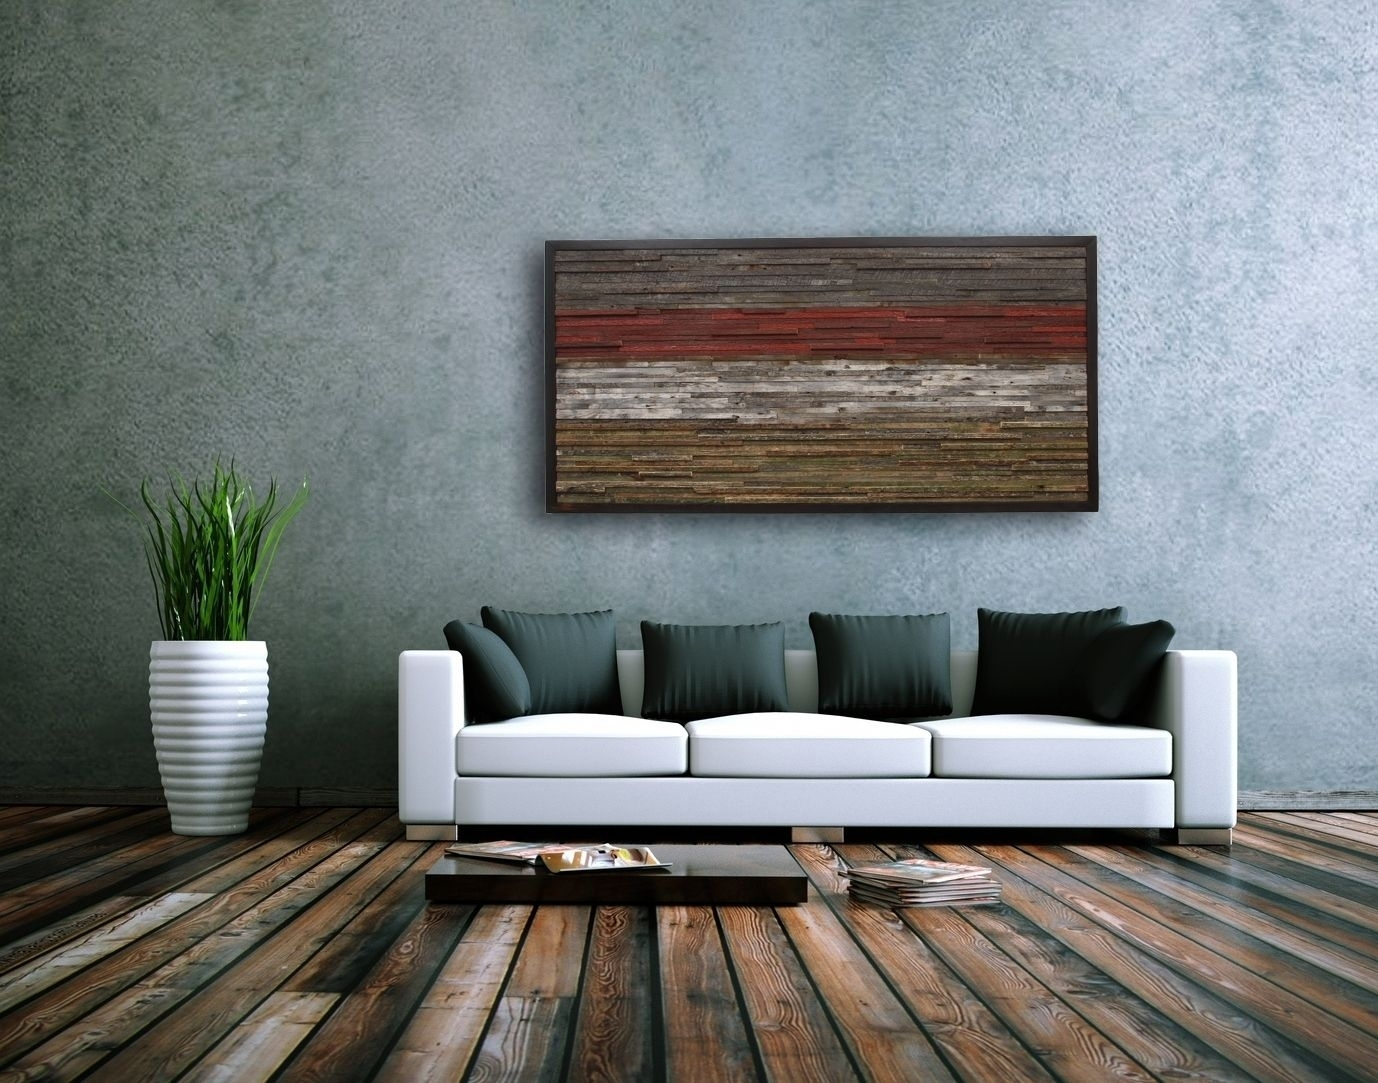 Astonishing Strikingly Ideas Large Rustic Wall Art With Metal in Large Rustic Wall Art (Image 4 of 20)